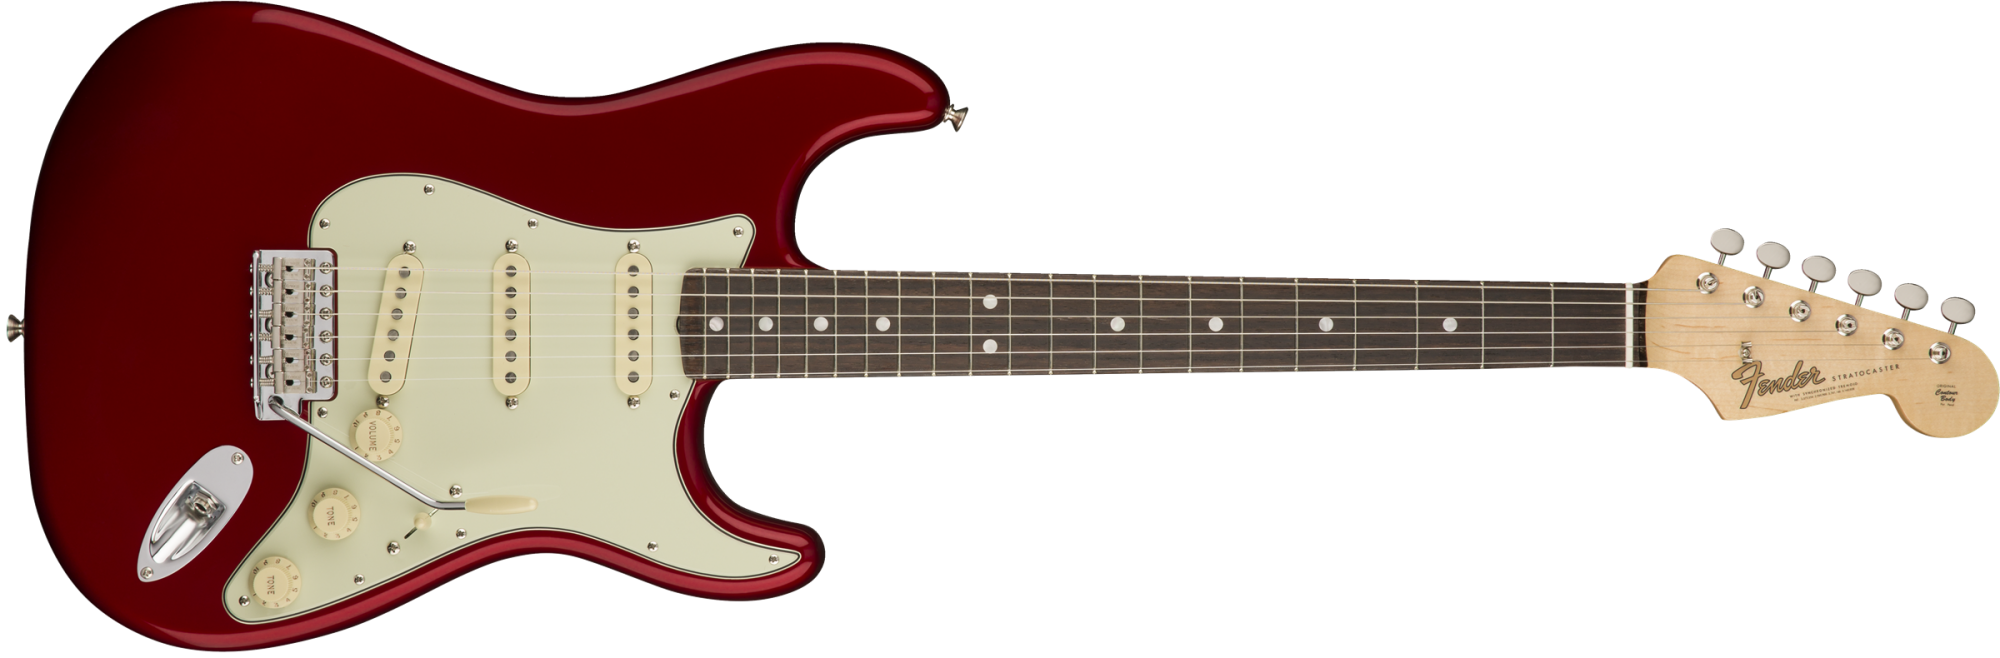 Fender American Original '60s Stratocaster Electric Guitar - Rosewood Fingerboard - Candy Apple Red